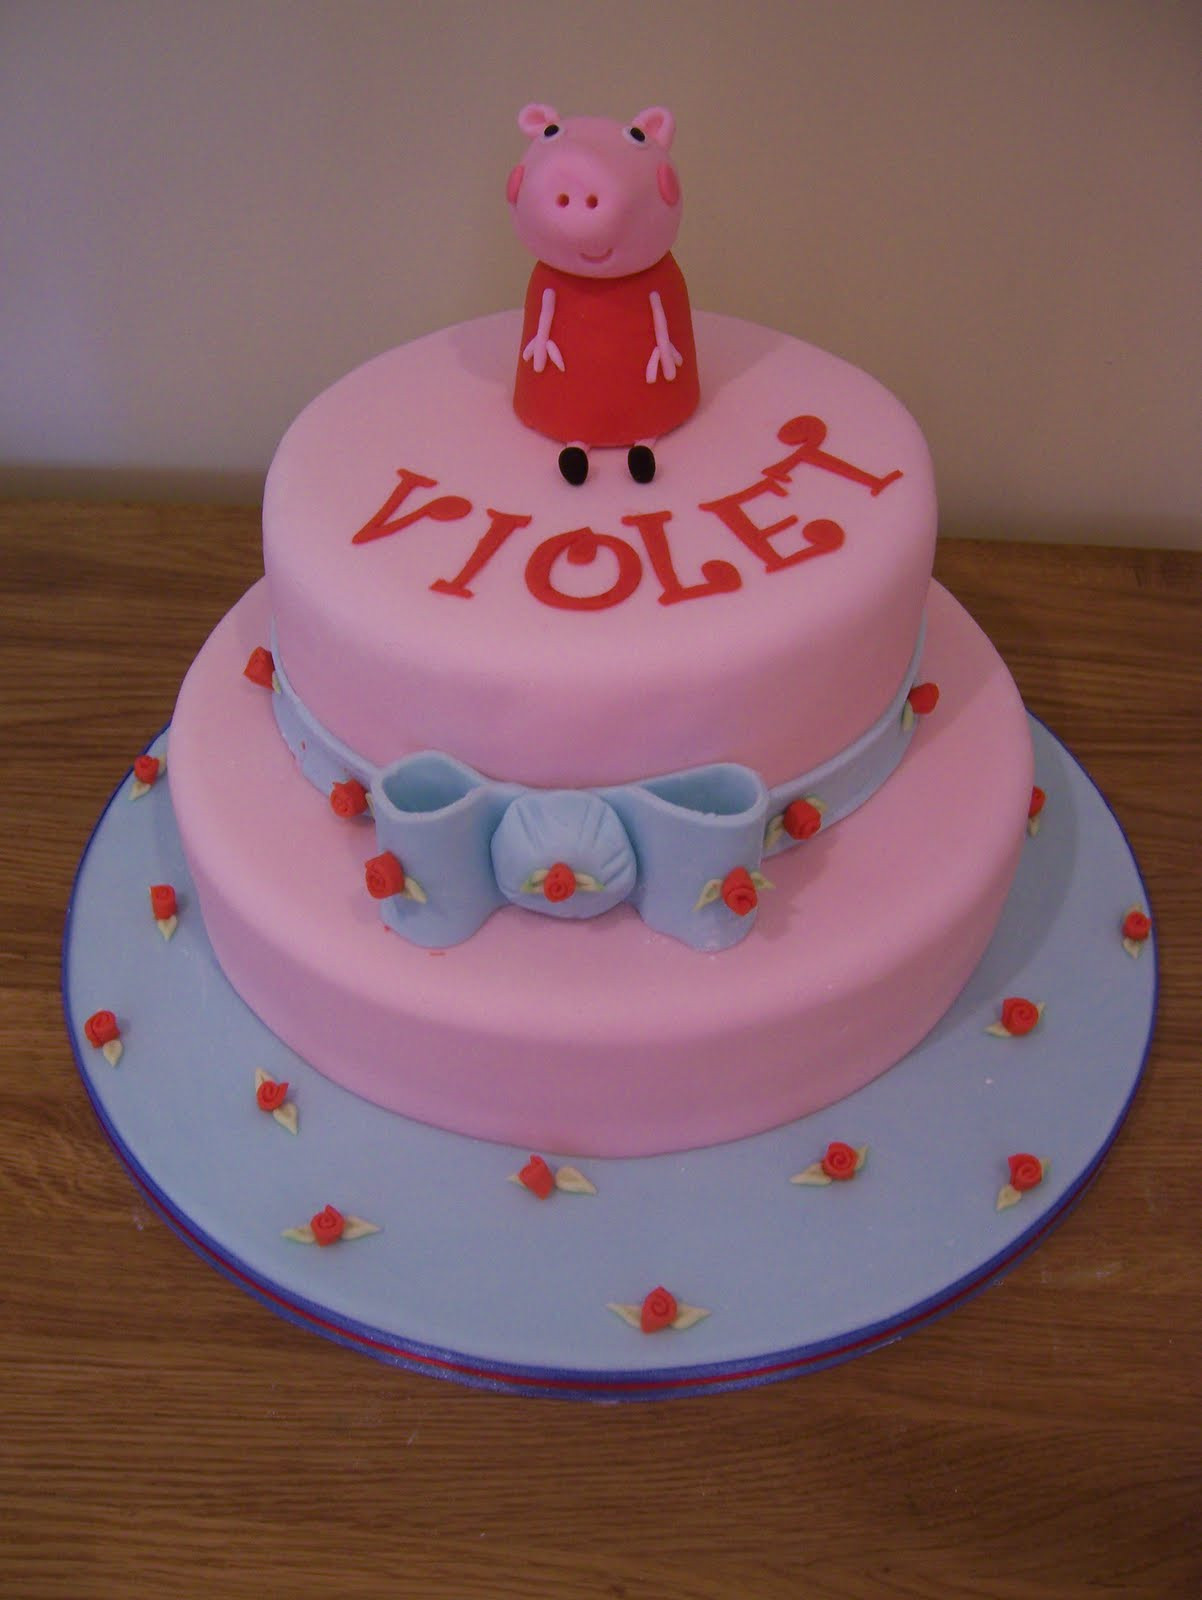 Peppa Pig Birthday Cake  peppa pig cake topper tutorial Archives Casa Costello